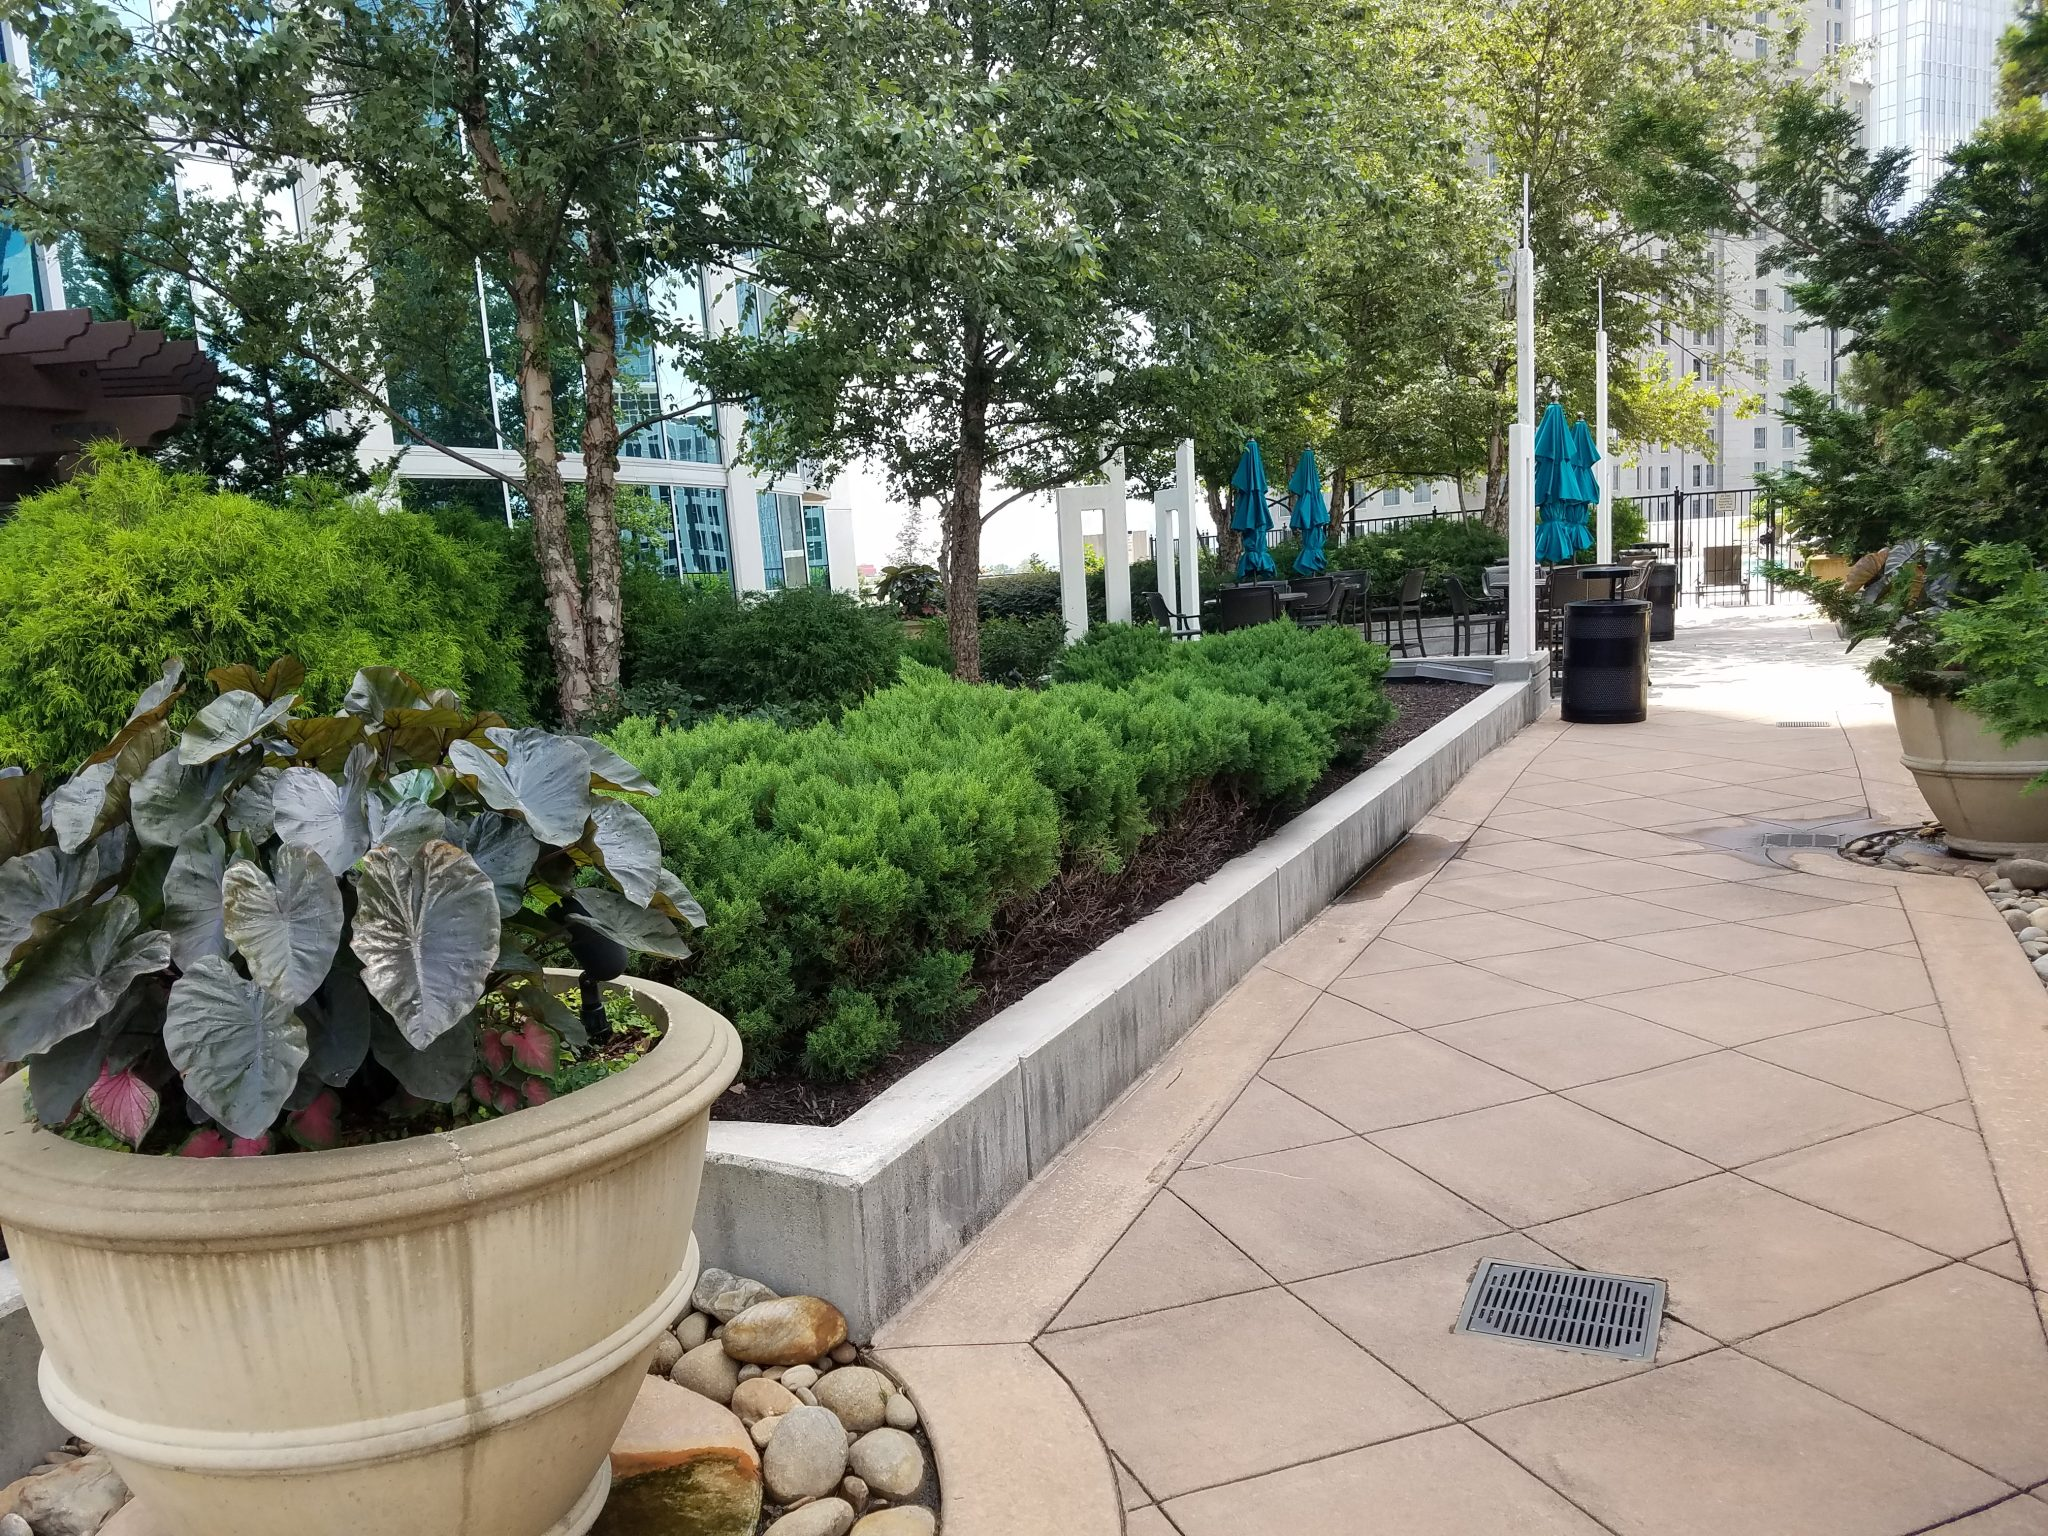 The Realm in Buckhead walkway in Common Area outside with large planter